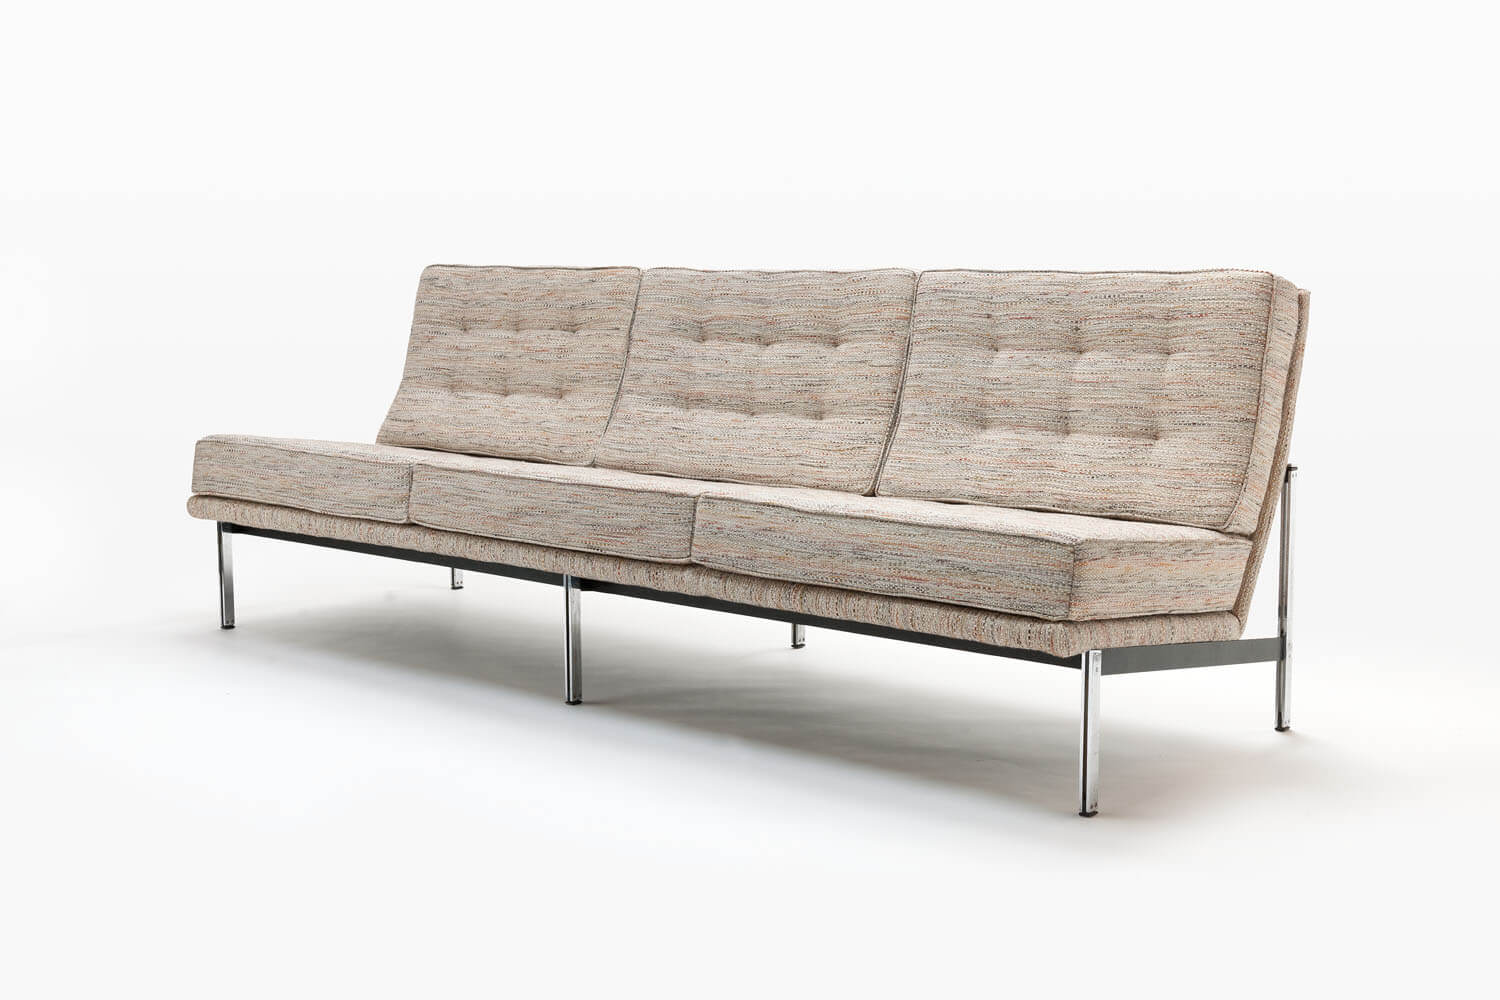 Vintage Parallel Bar Sofa